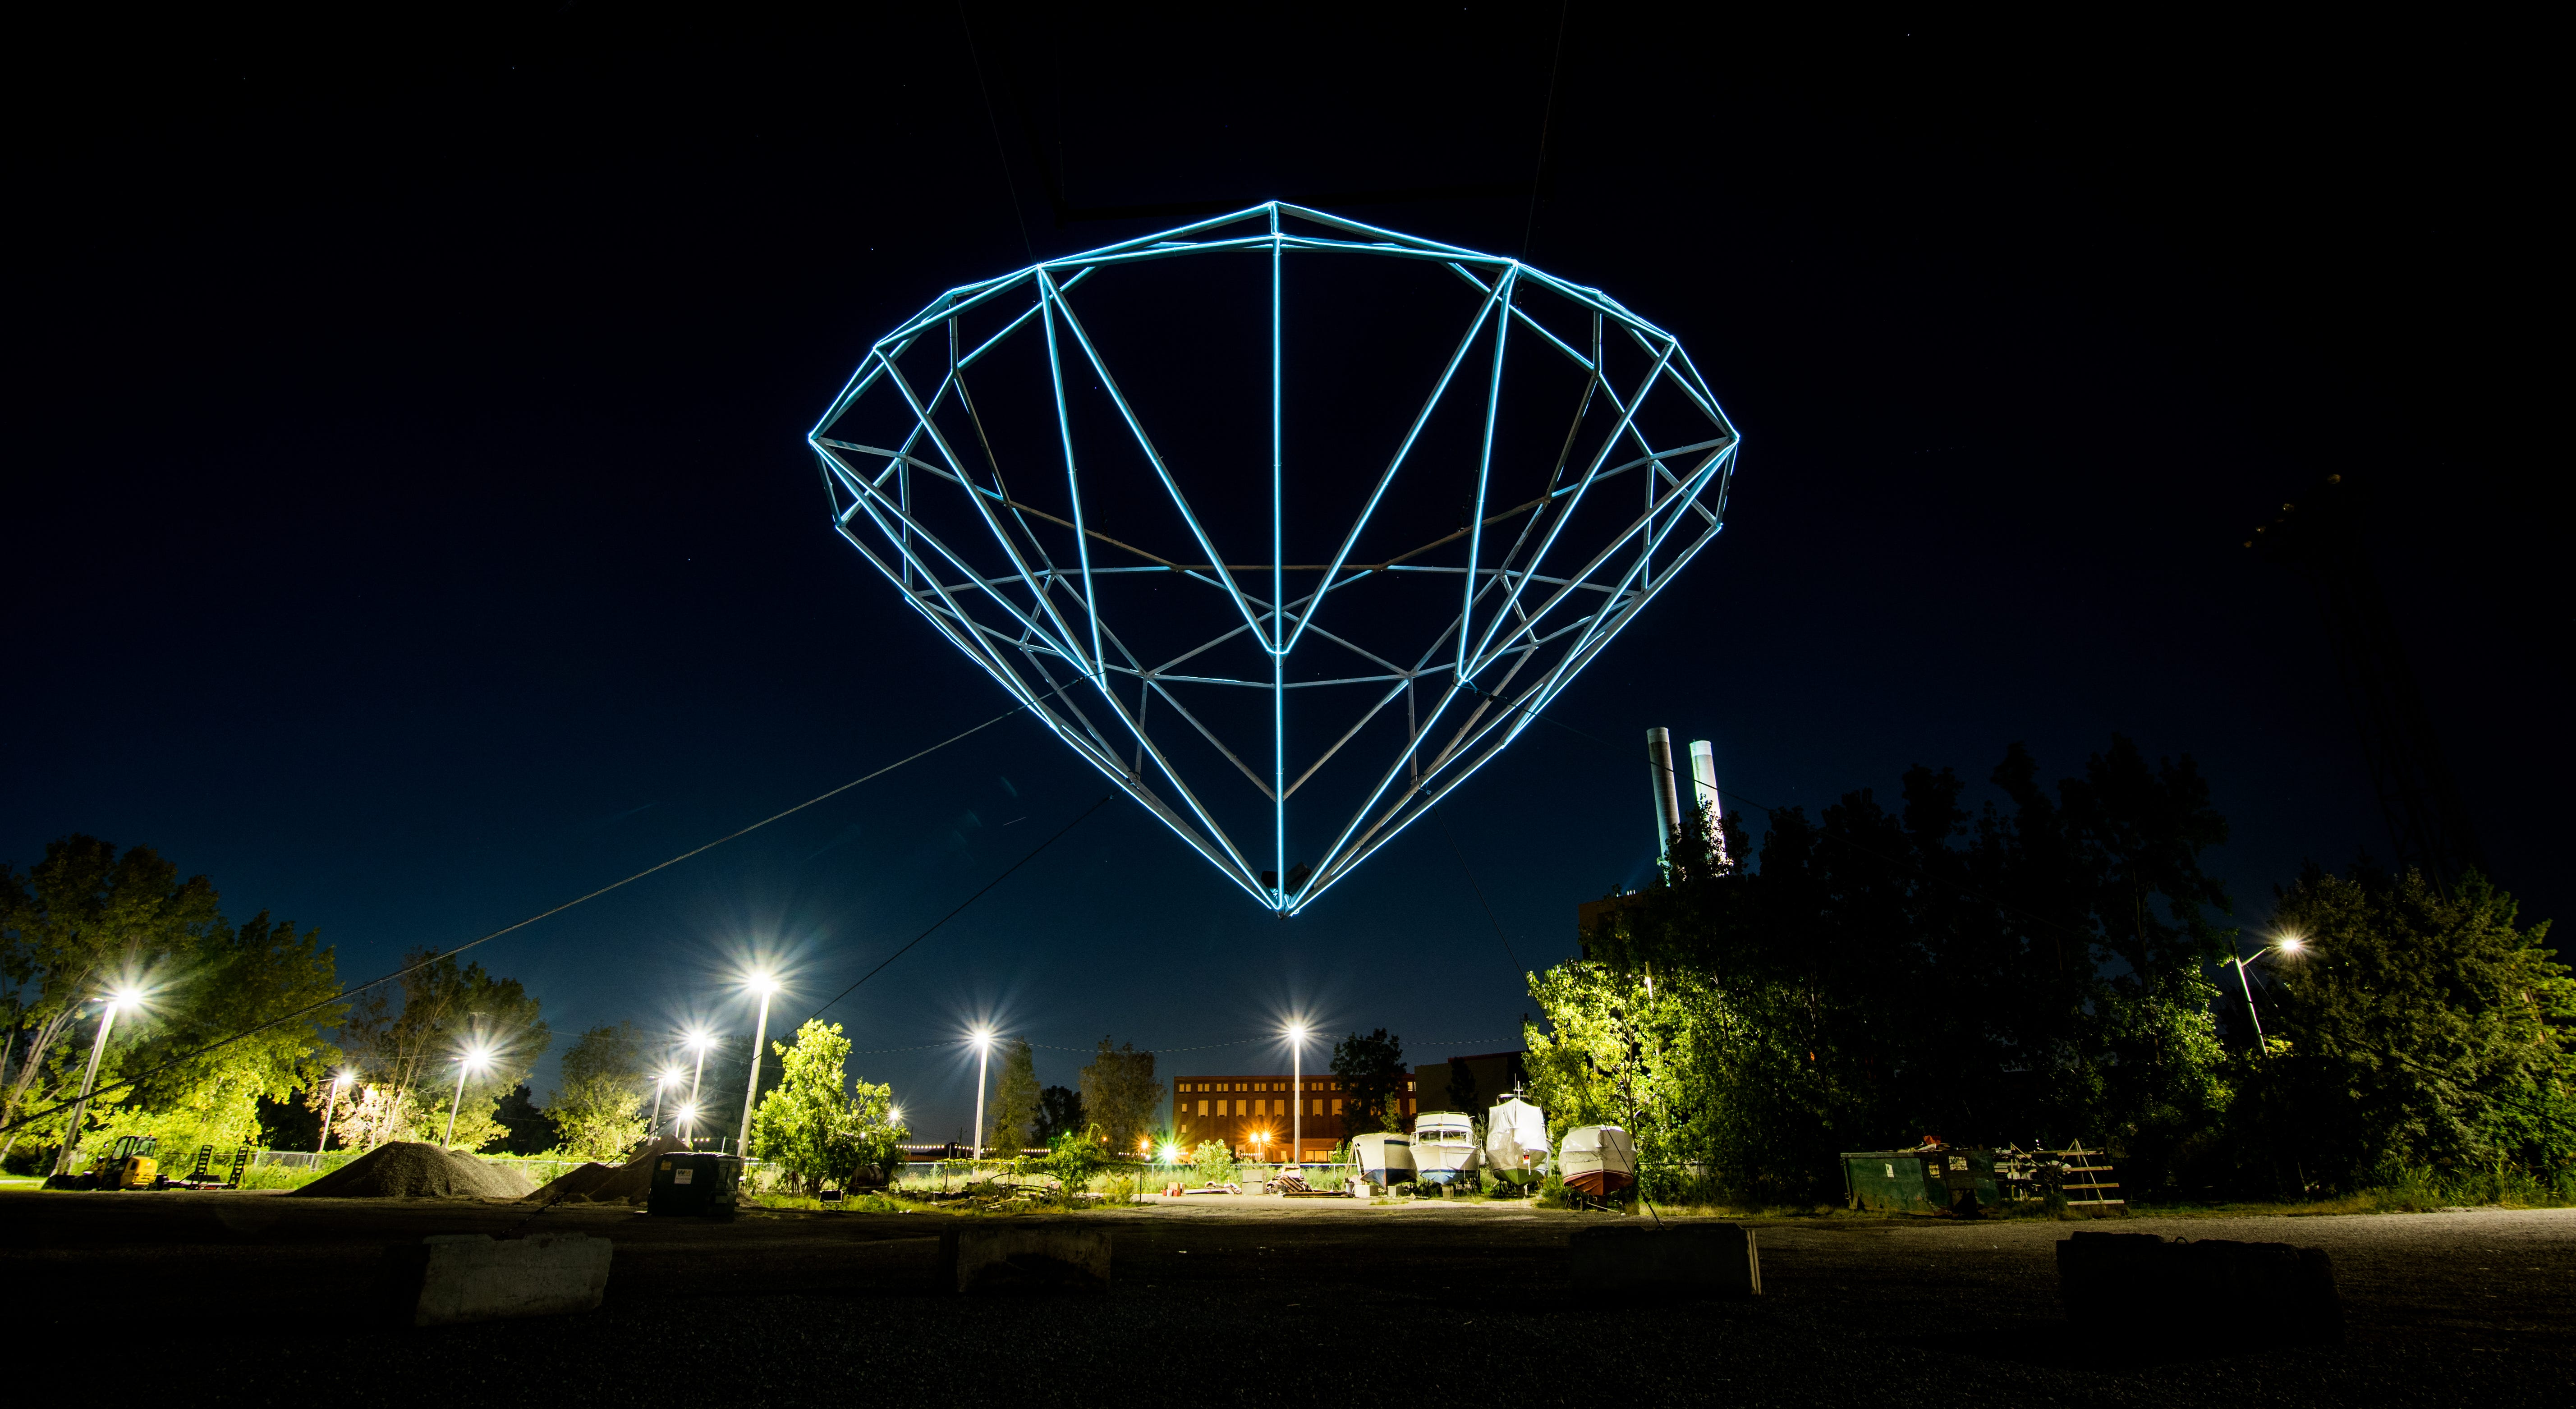 """""""Diamond II,"""" a 24-foot, diamond-shaped light installation, is suspended over a waterfront site where the Conners Creek DTE plant used to stand on the Detroit River. The Edison Boat Club, a marina for DTE employees, remains in use. The artist-duo known as Hygienic Dress League has three large-scale works at the site, intended to explore the ideas of superficial value vs. real value, among others."""